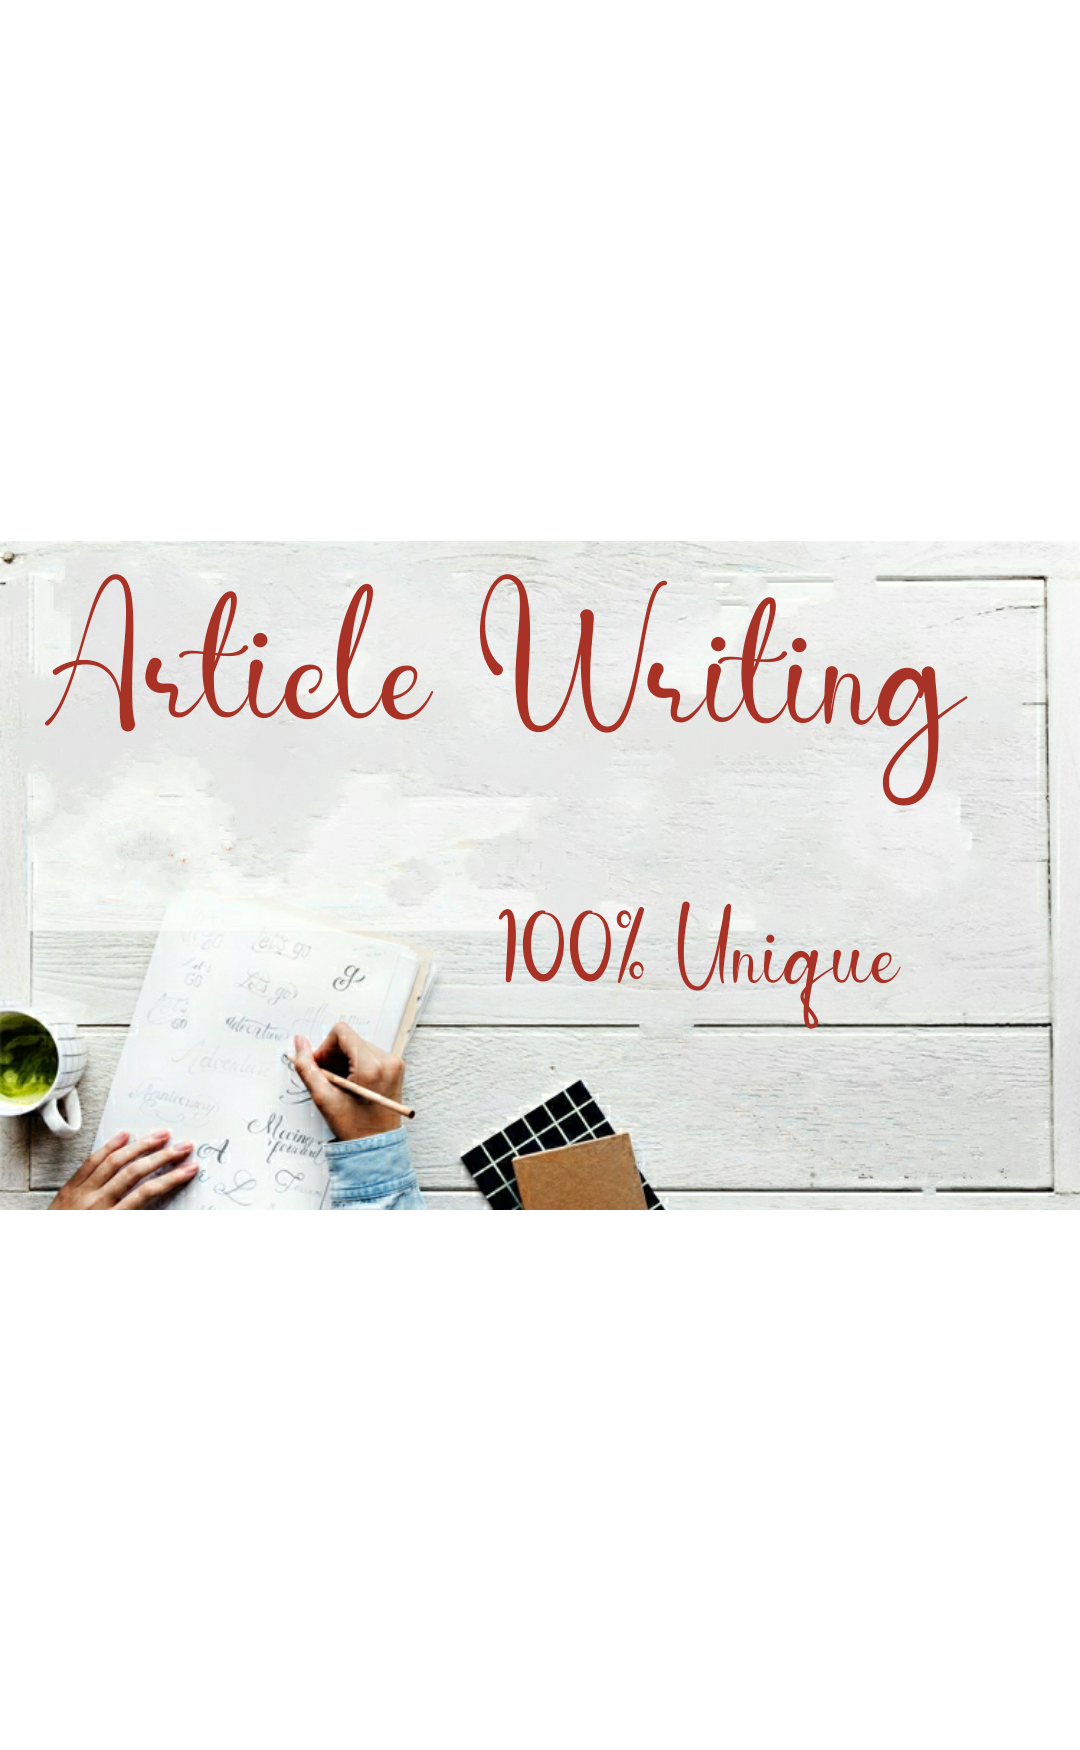 Premium Quality Article/Content writing 500-800 Words